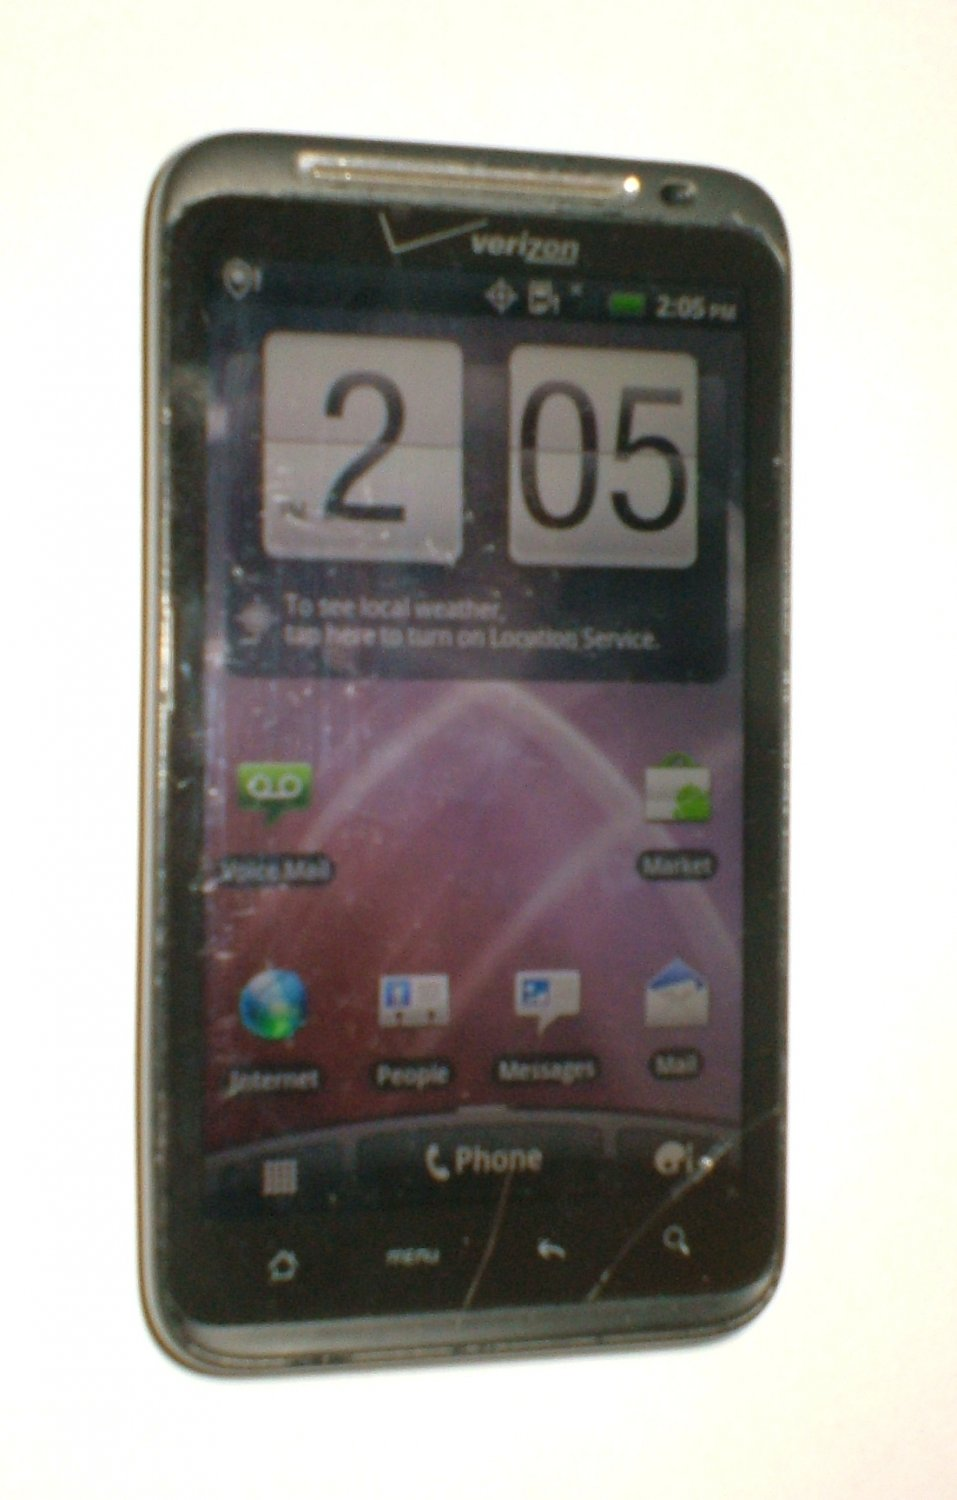 HTC Thunderbolt ADR6400 (Verizon) 4g Smartphone, with charger